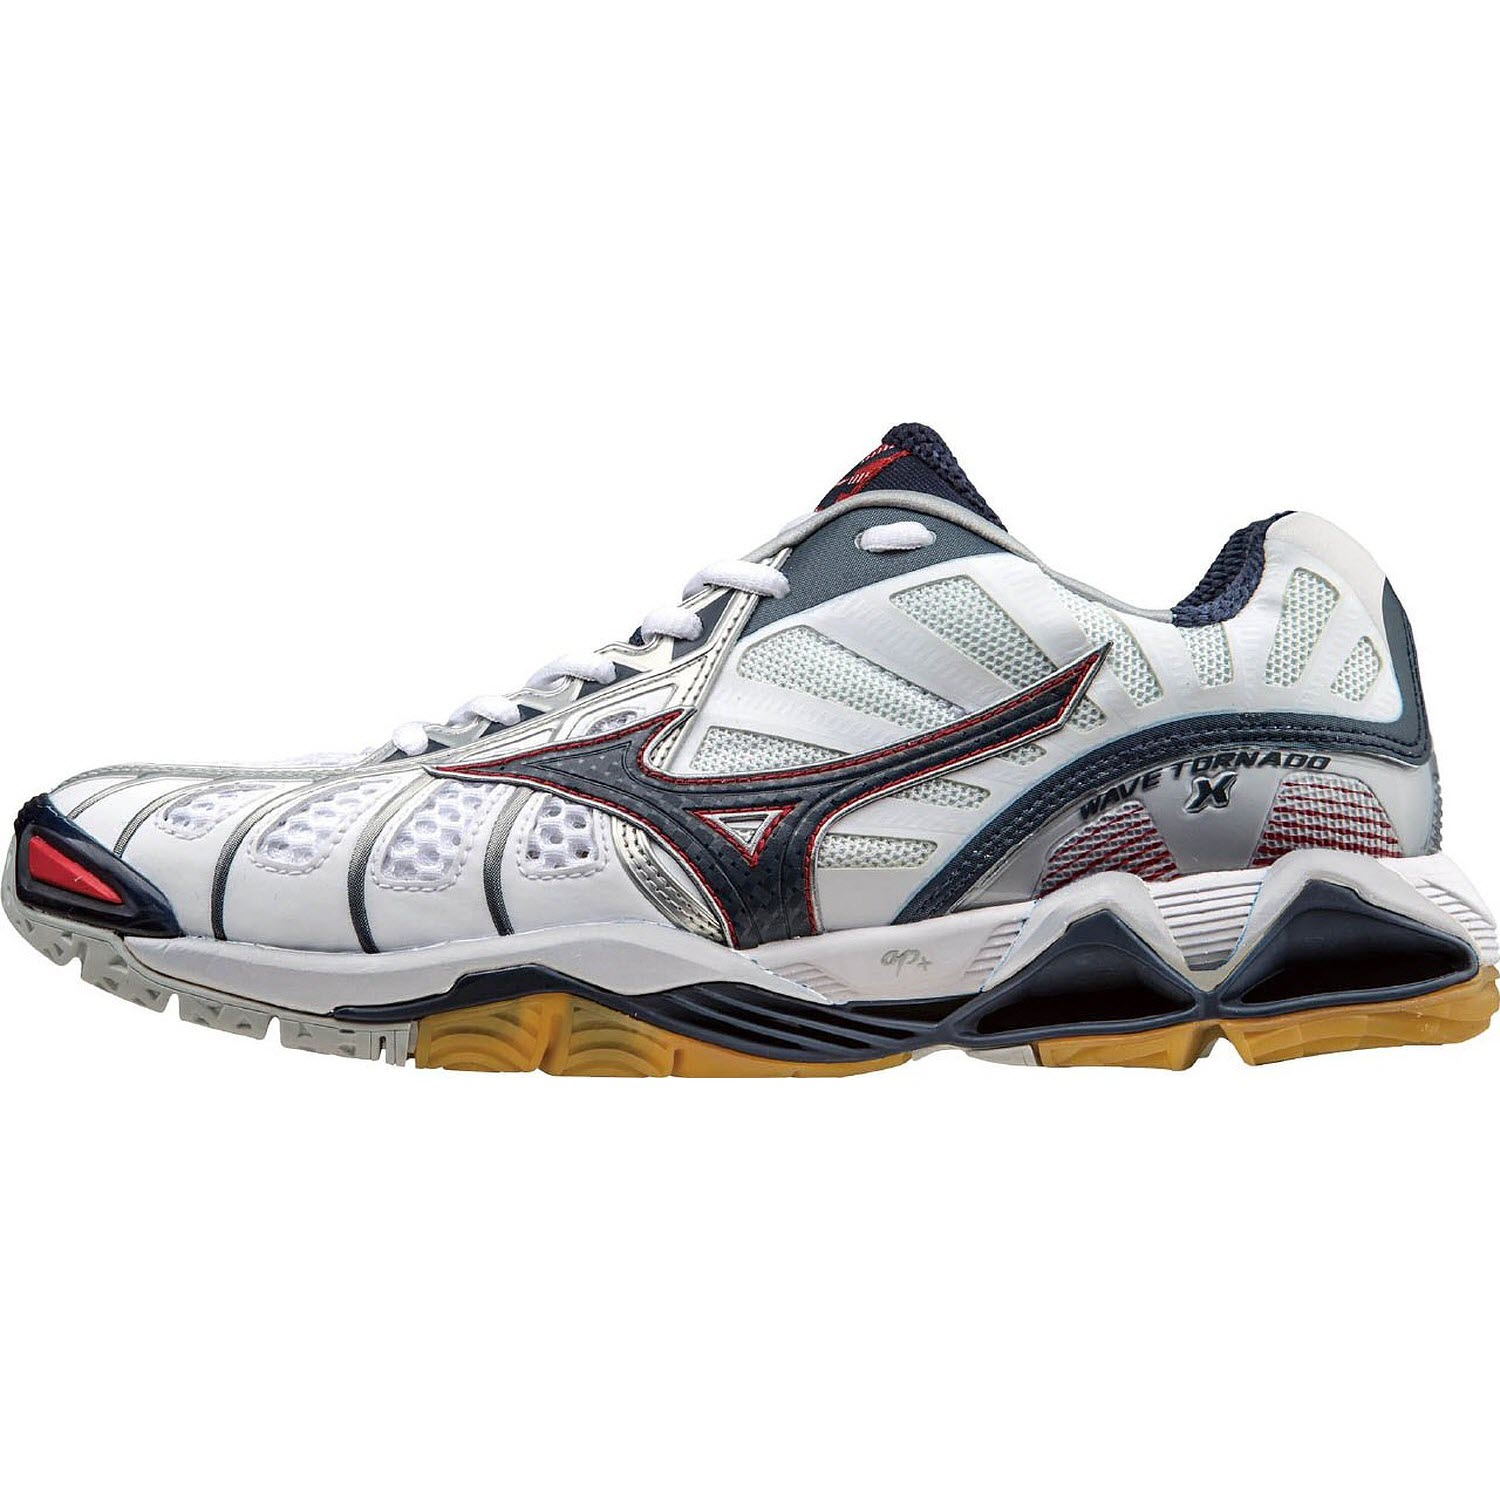 Where To Buy Mizuno Volleyball Shoes In Singapore